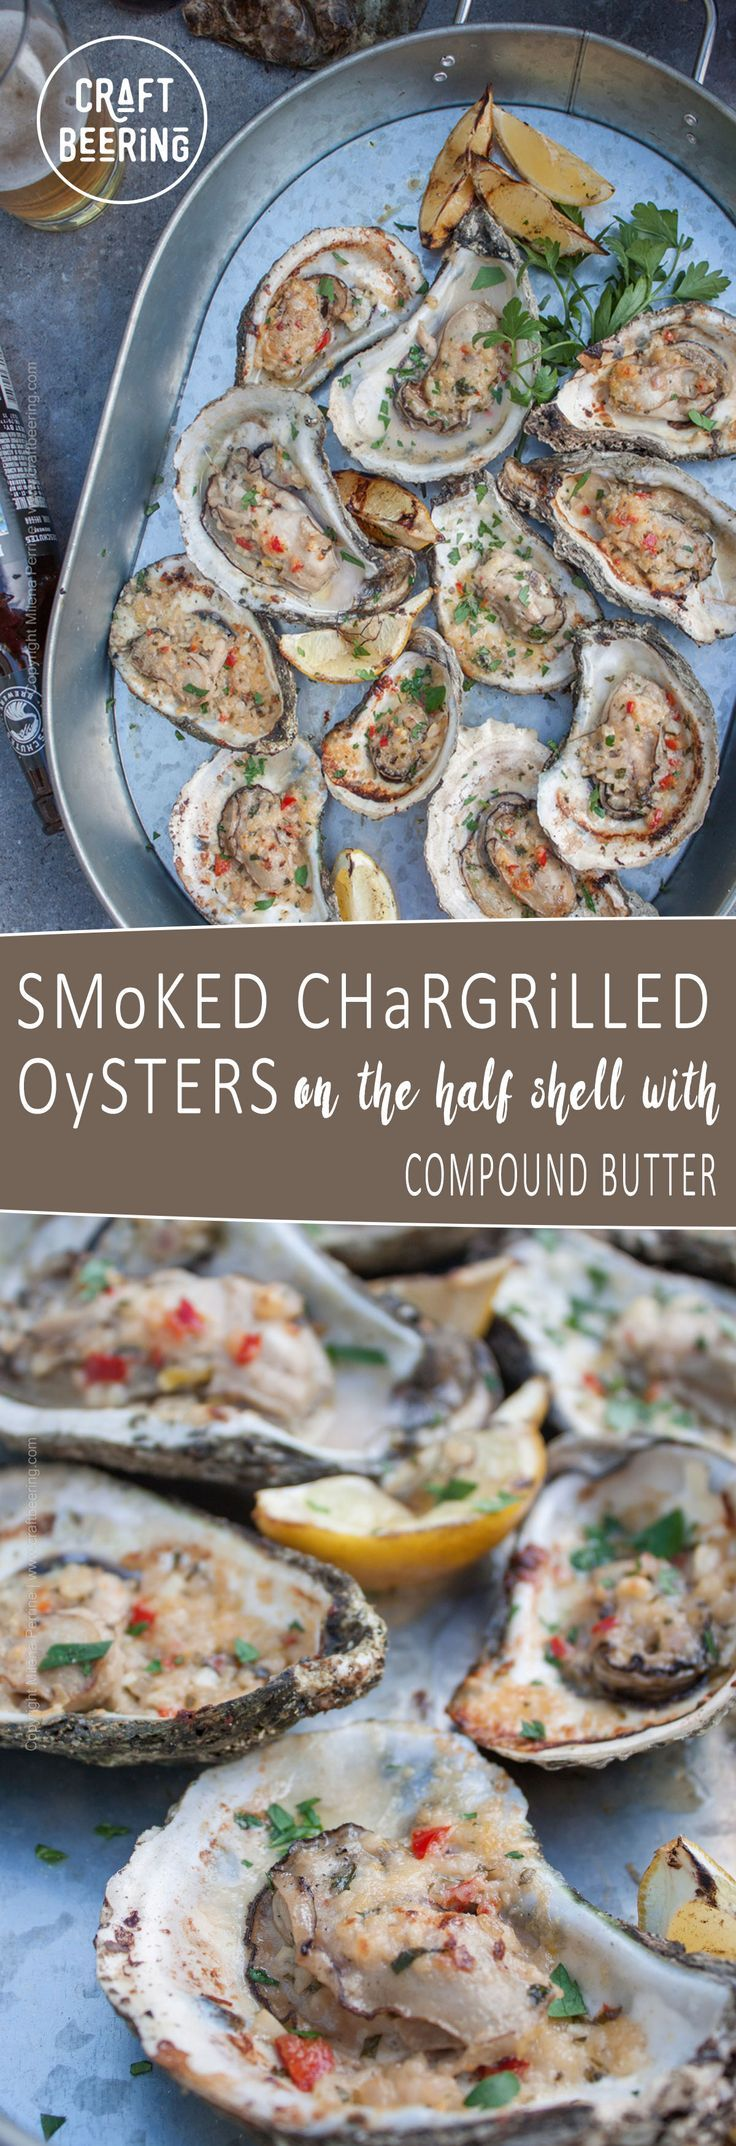 Chargrilled oysters on the half shell. Smoked with mesquite and apple wood. Bathed in butter compound. Pair with a Pilsner